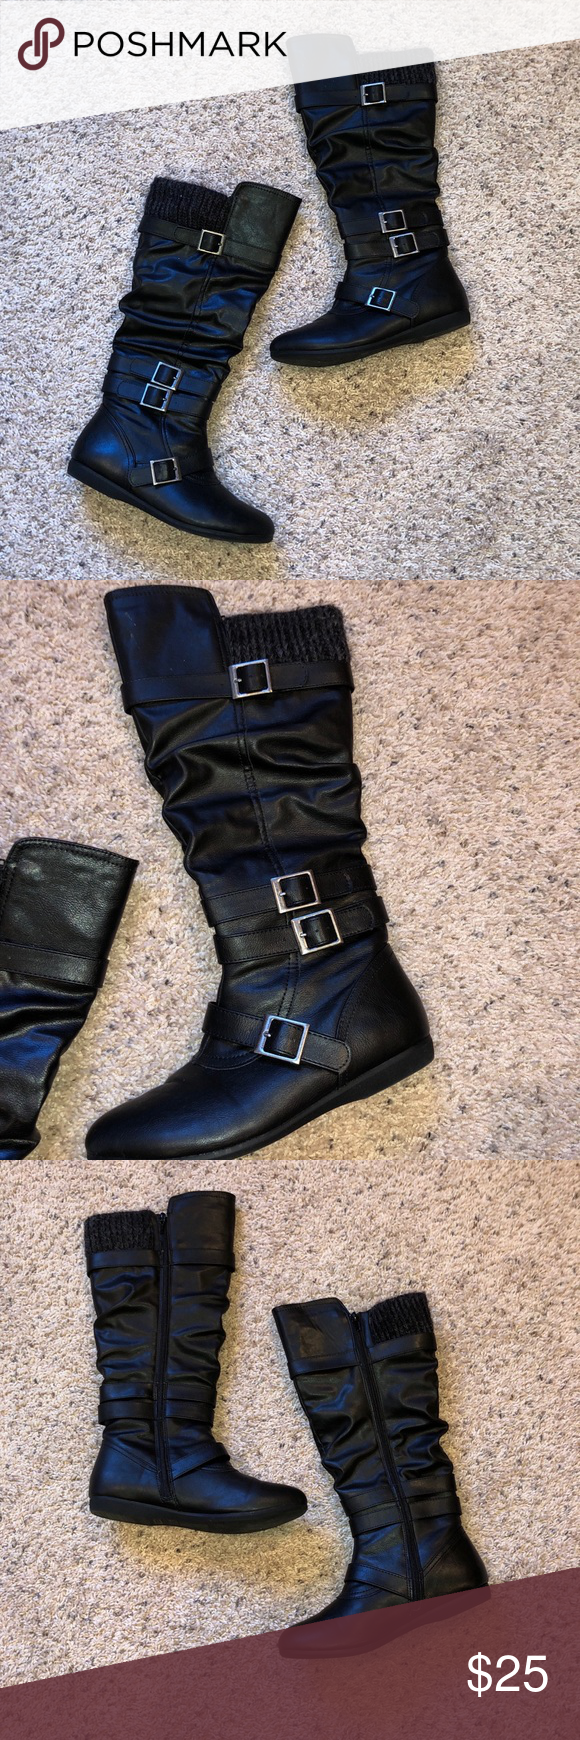 Bongo Black Myra Boots This Is A Size 8 Pair Of Bongo Black Boots In Great Condition Barley Worn Great To Wear With A Pair O Boots Black Boots Black Leggings